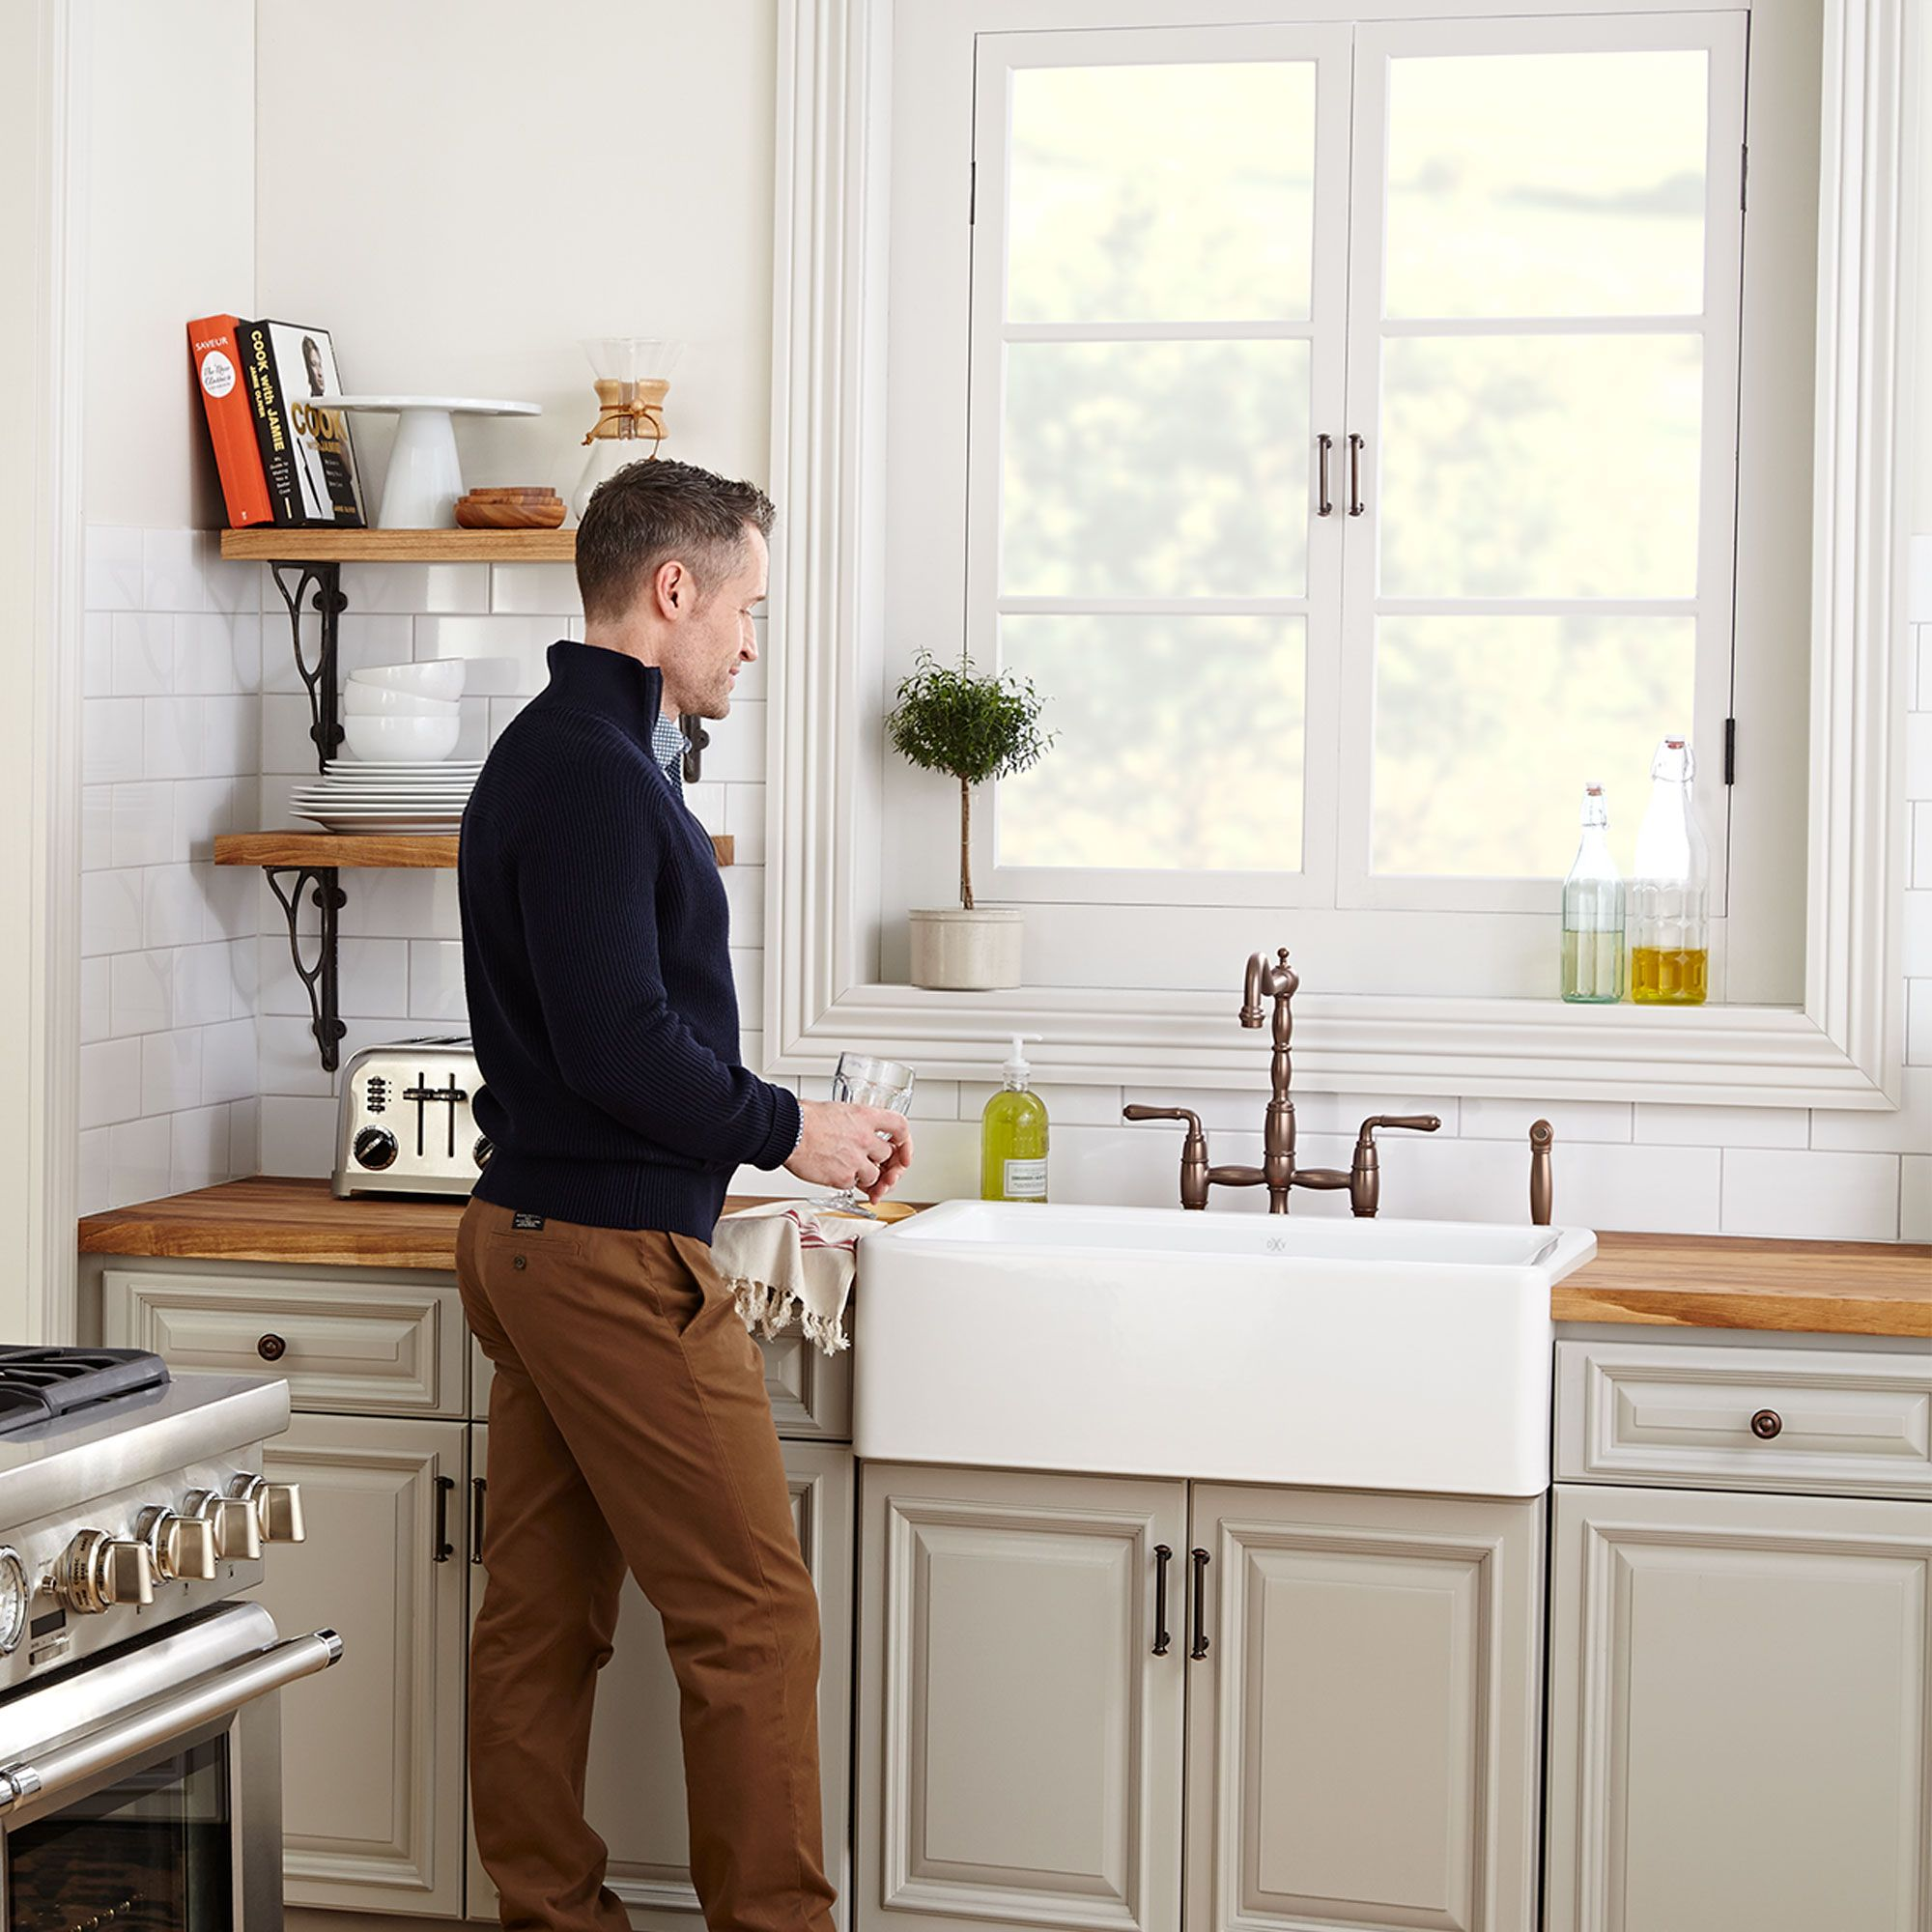 Hillside Kitchen Sink Collection from DXV (With images